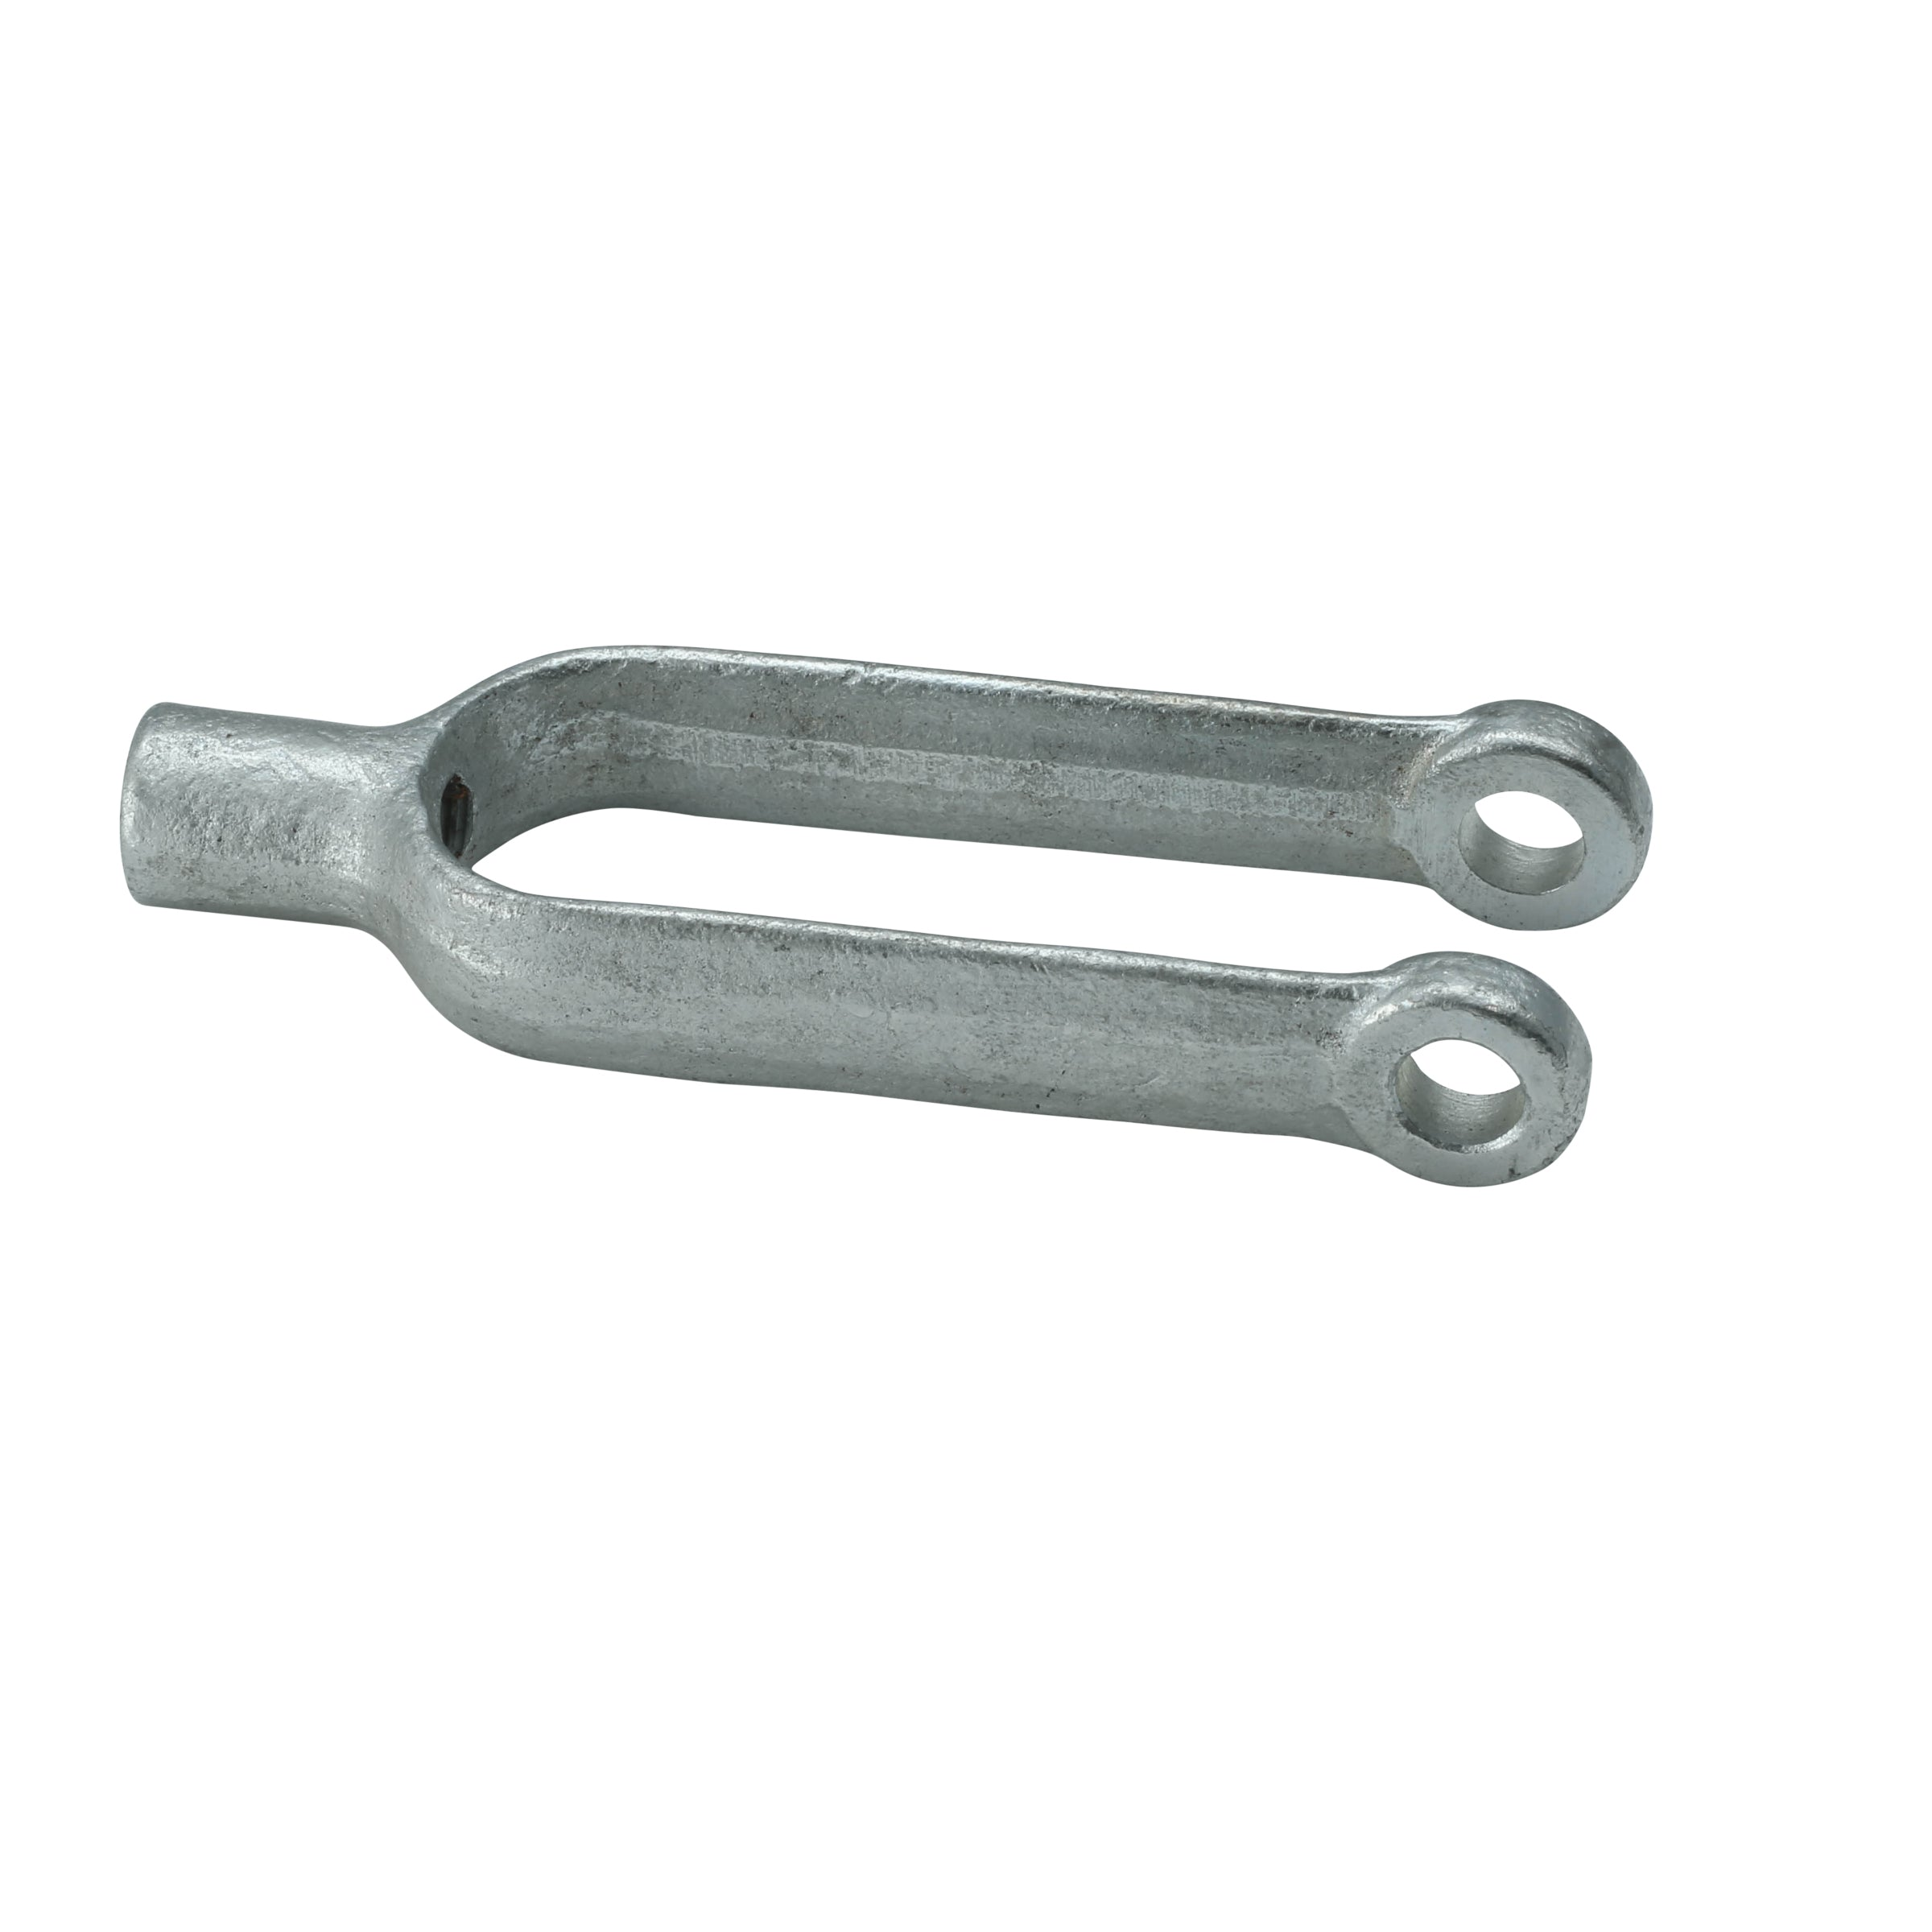 Brake Rod Adjustable Clevis • 1941-48 Ford